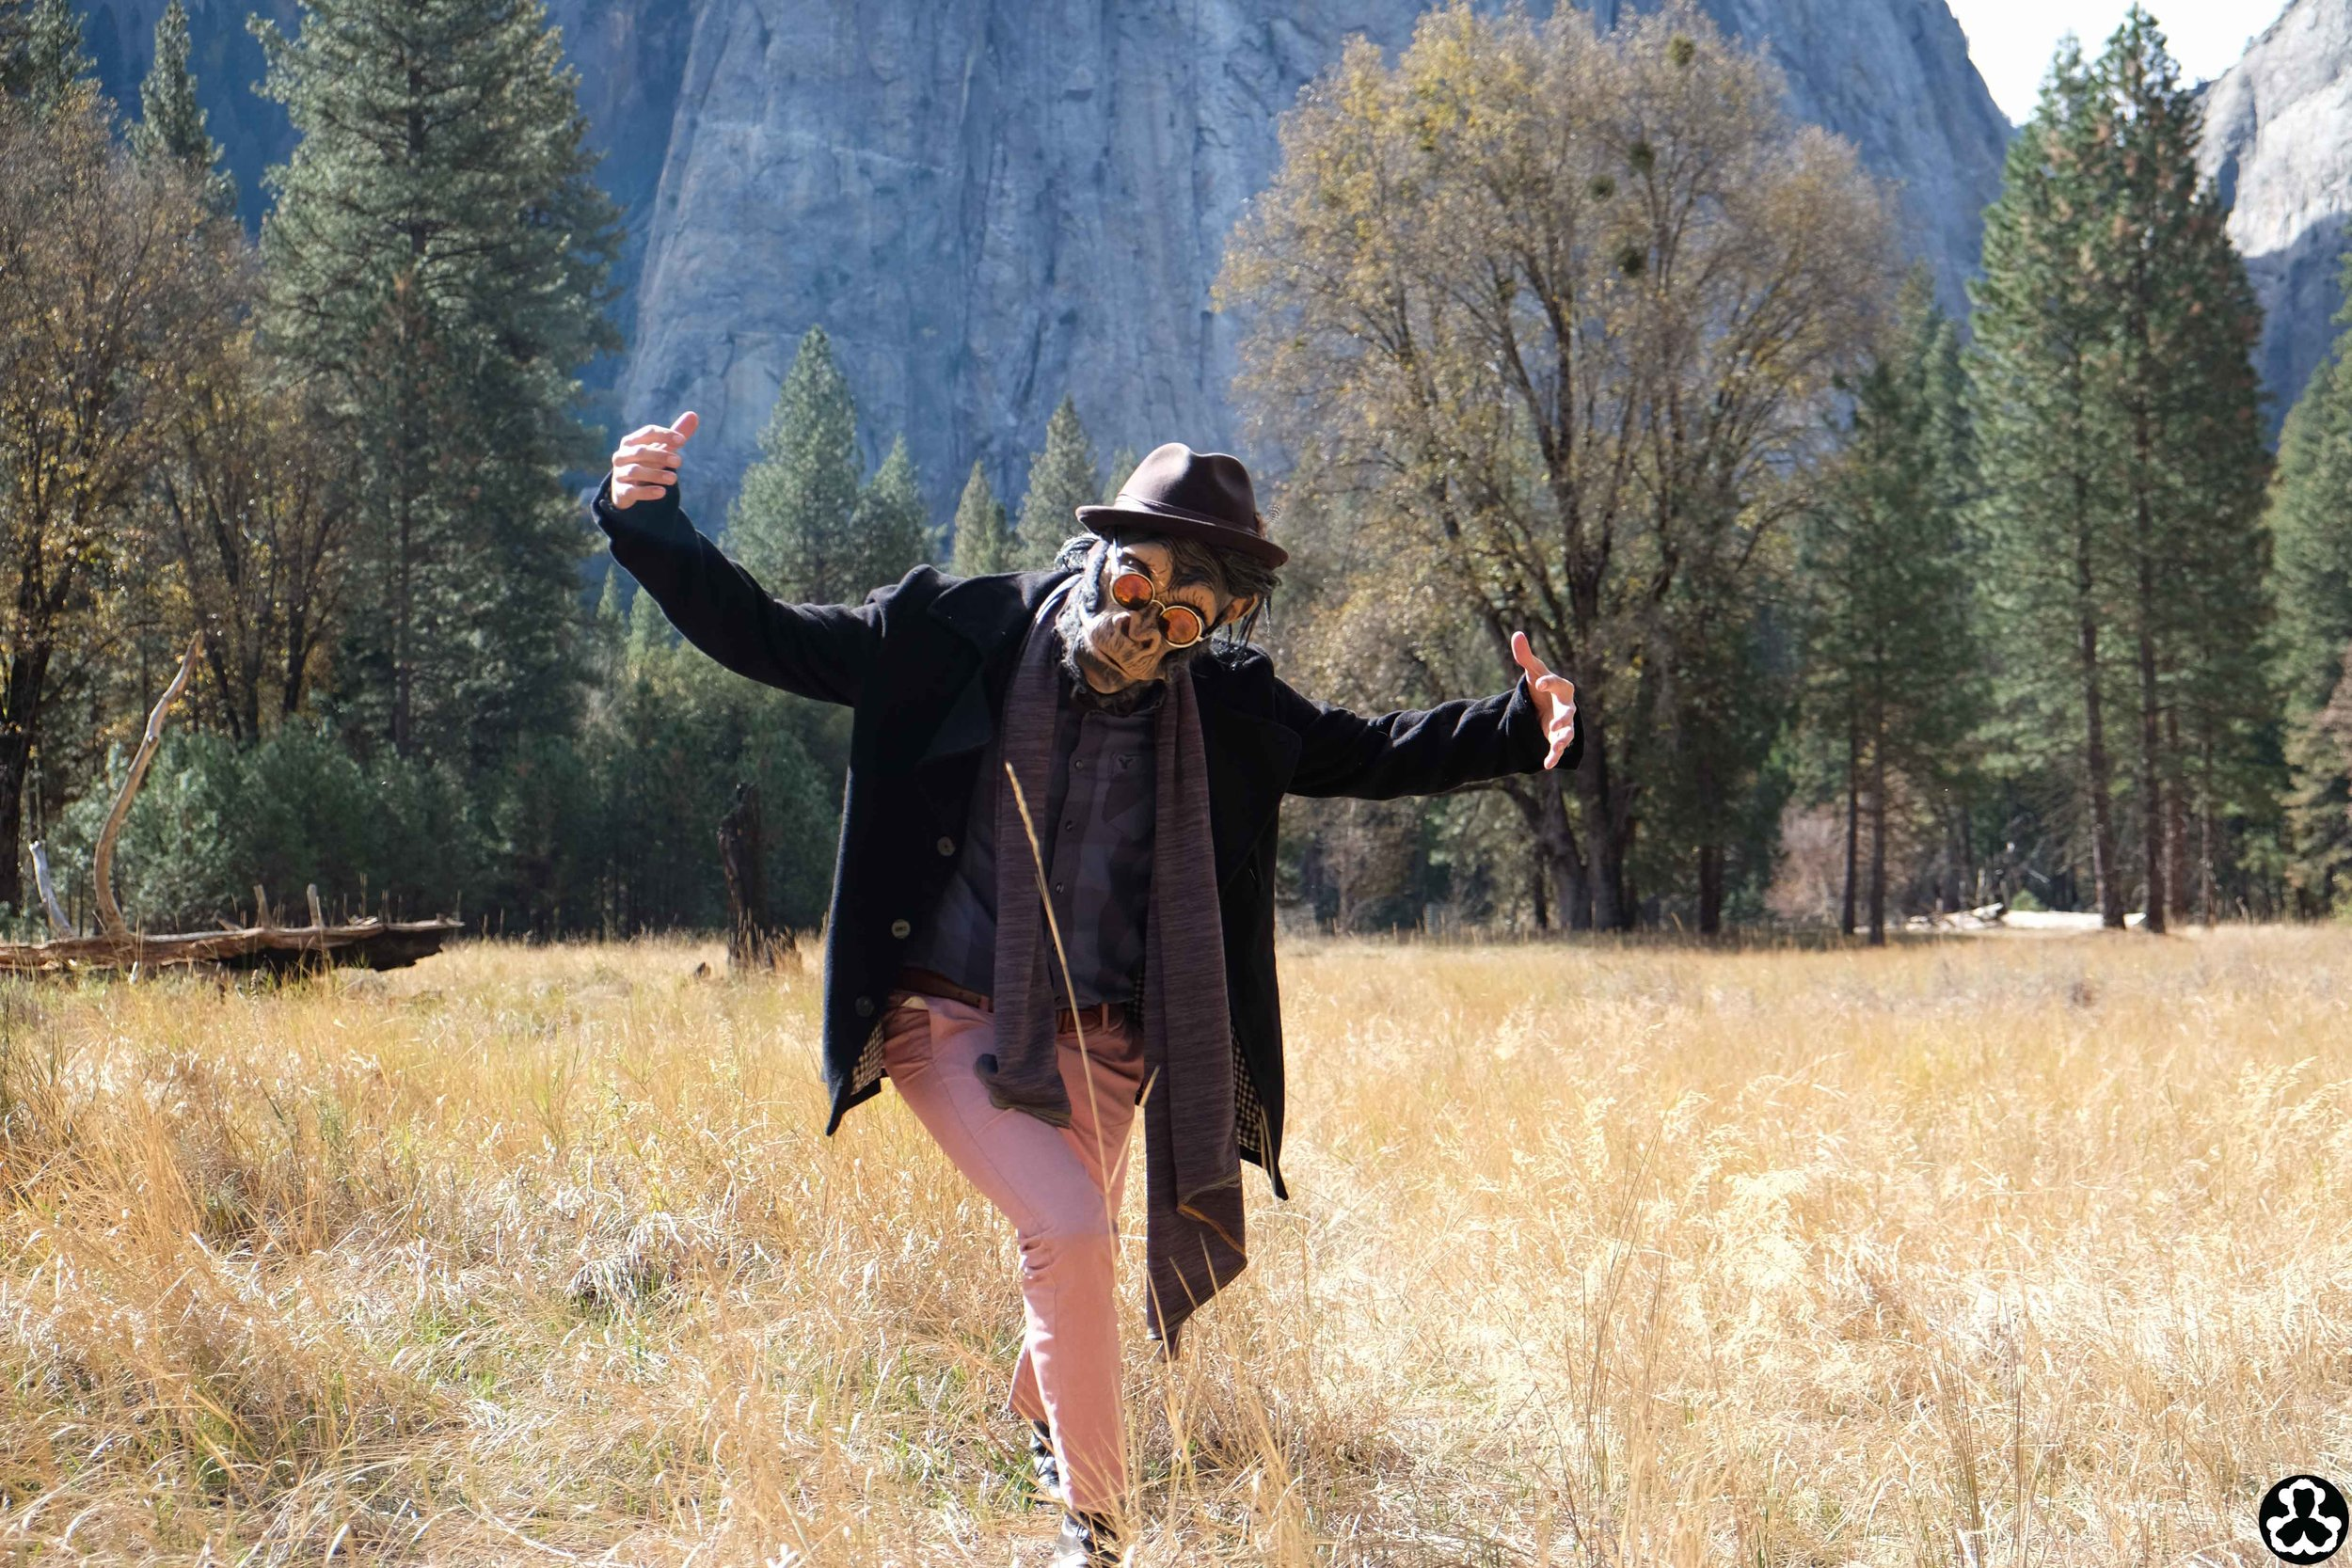 ape-is-dapper-apprentice-yosemite-outfits-7